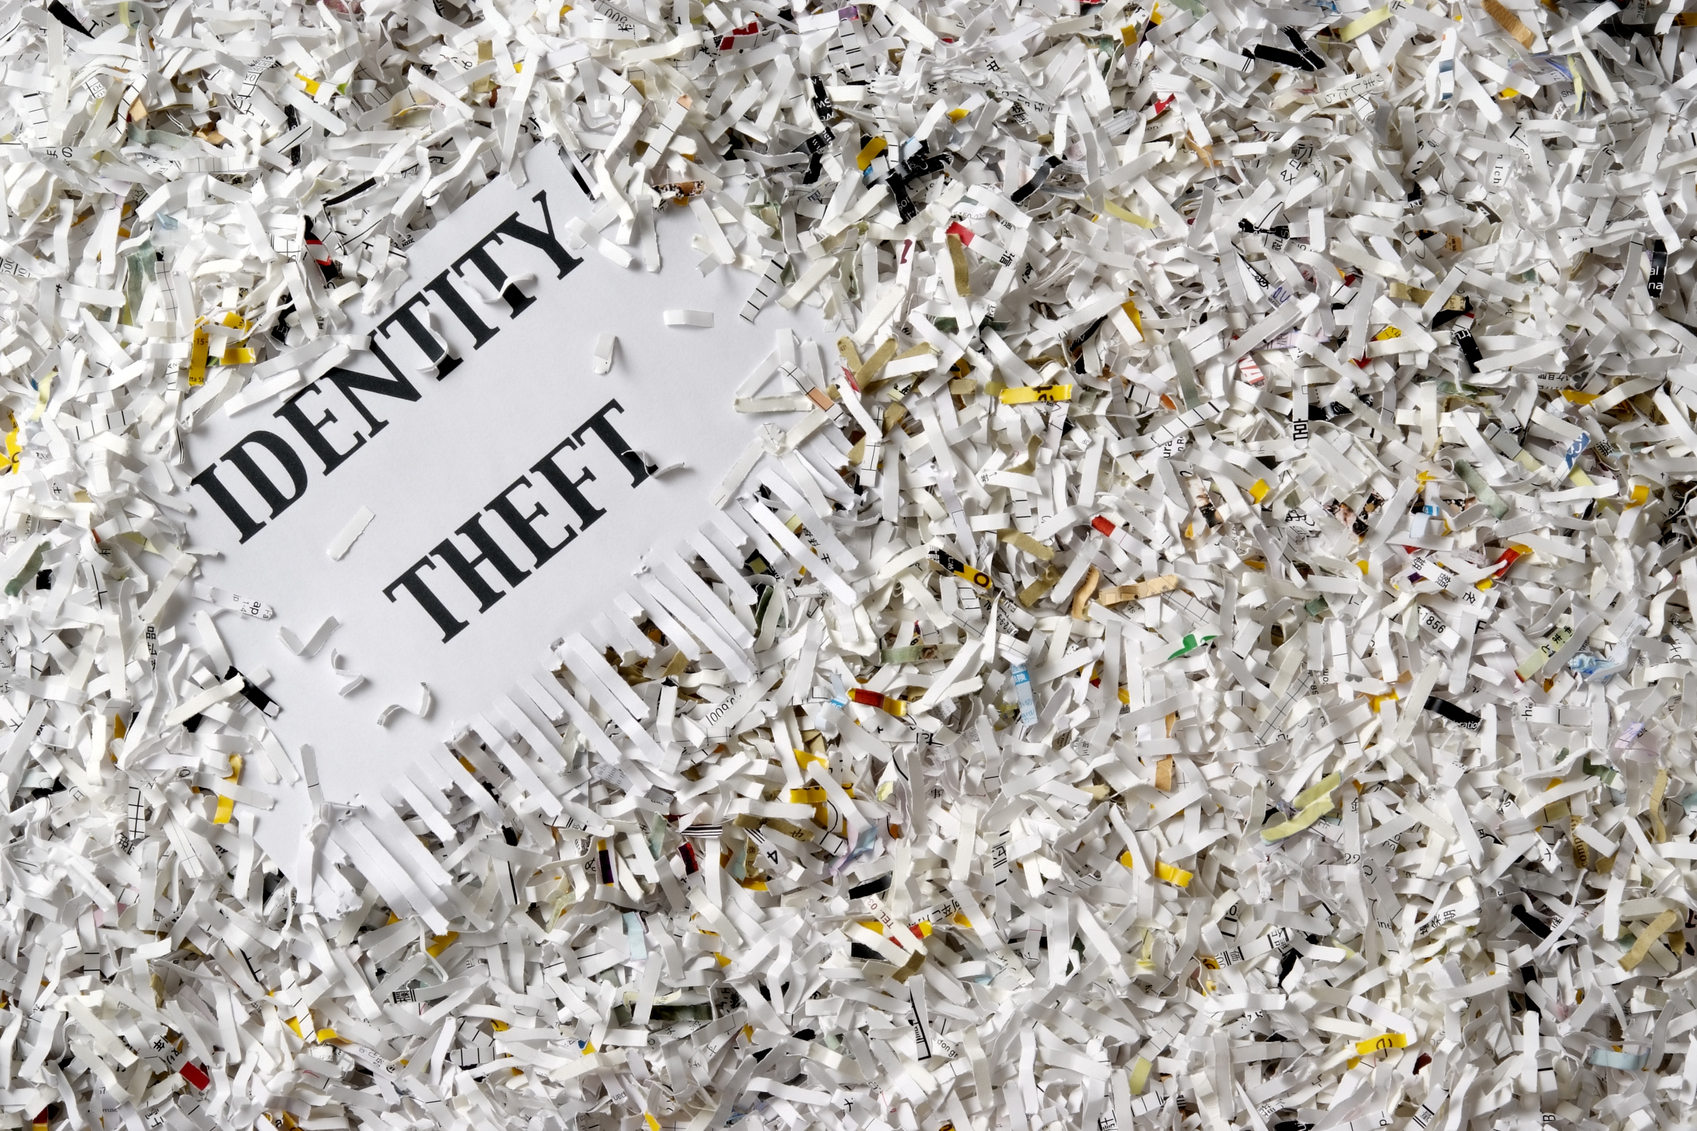 identity-theft-complete-shredding-solutions